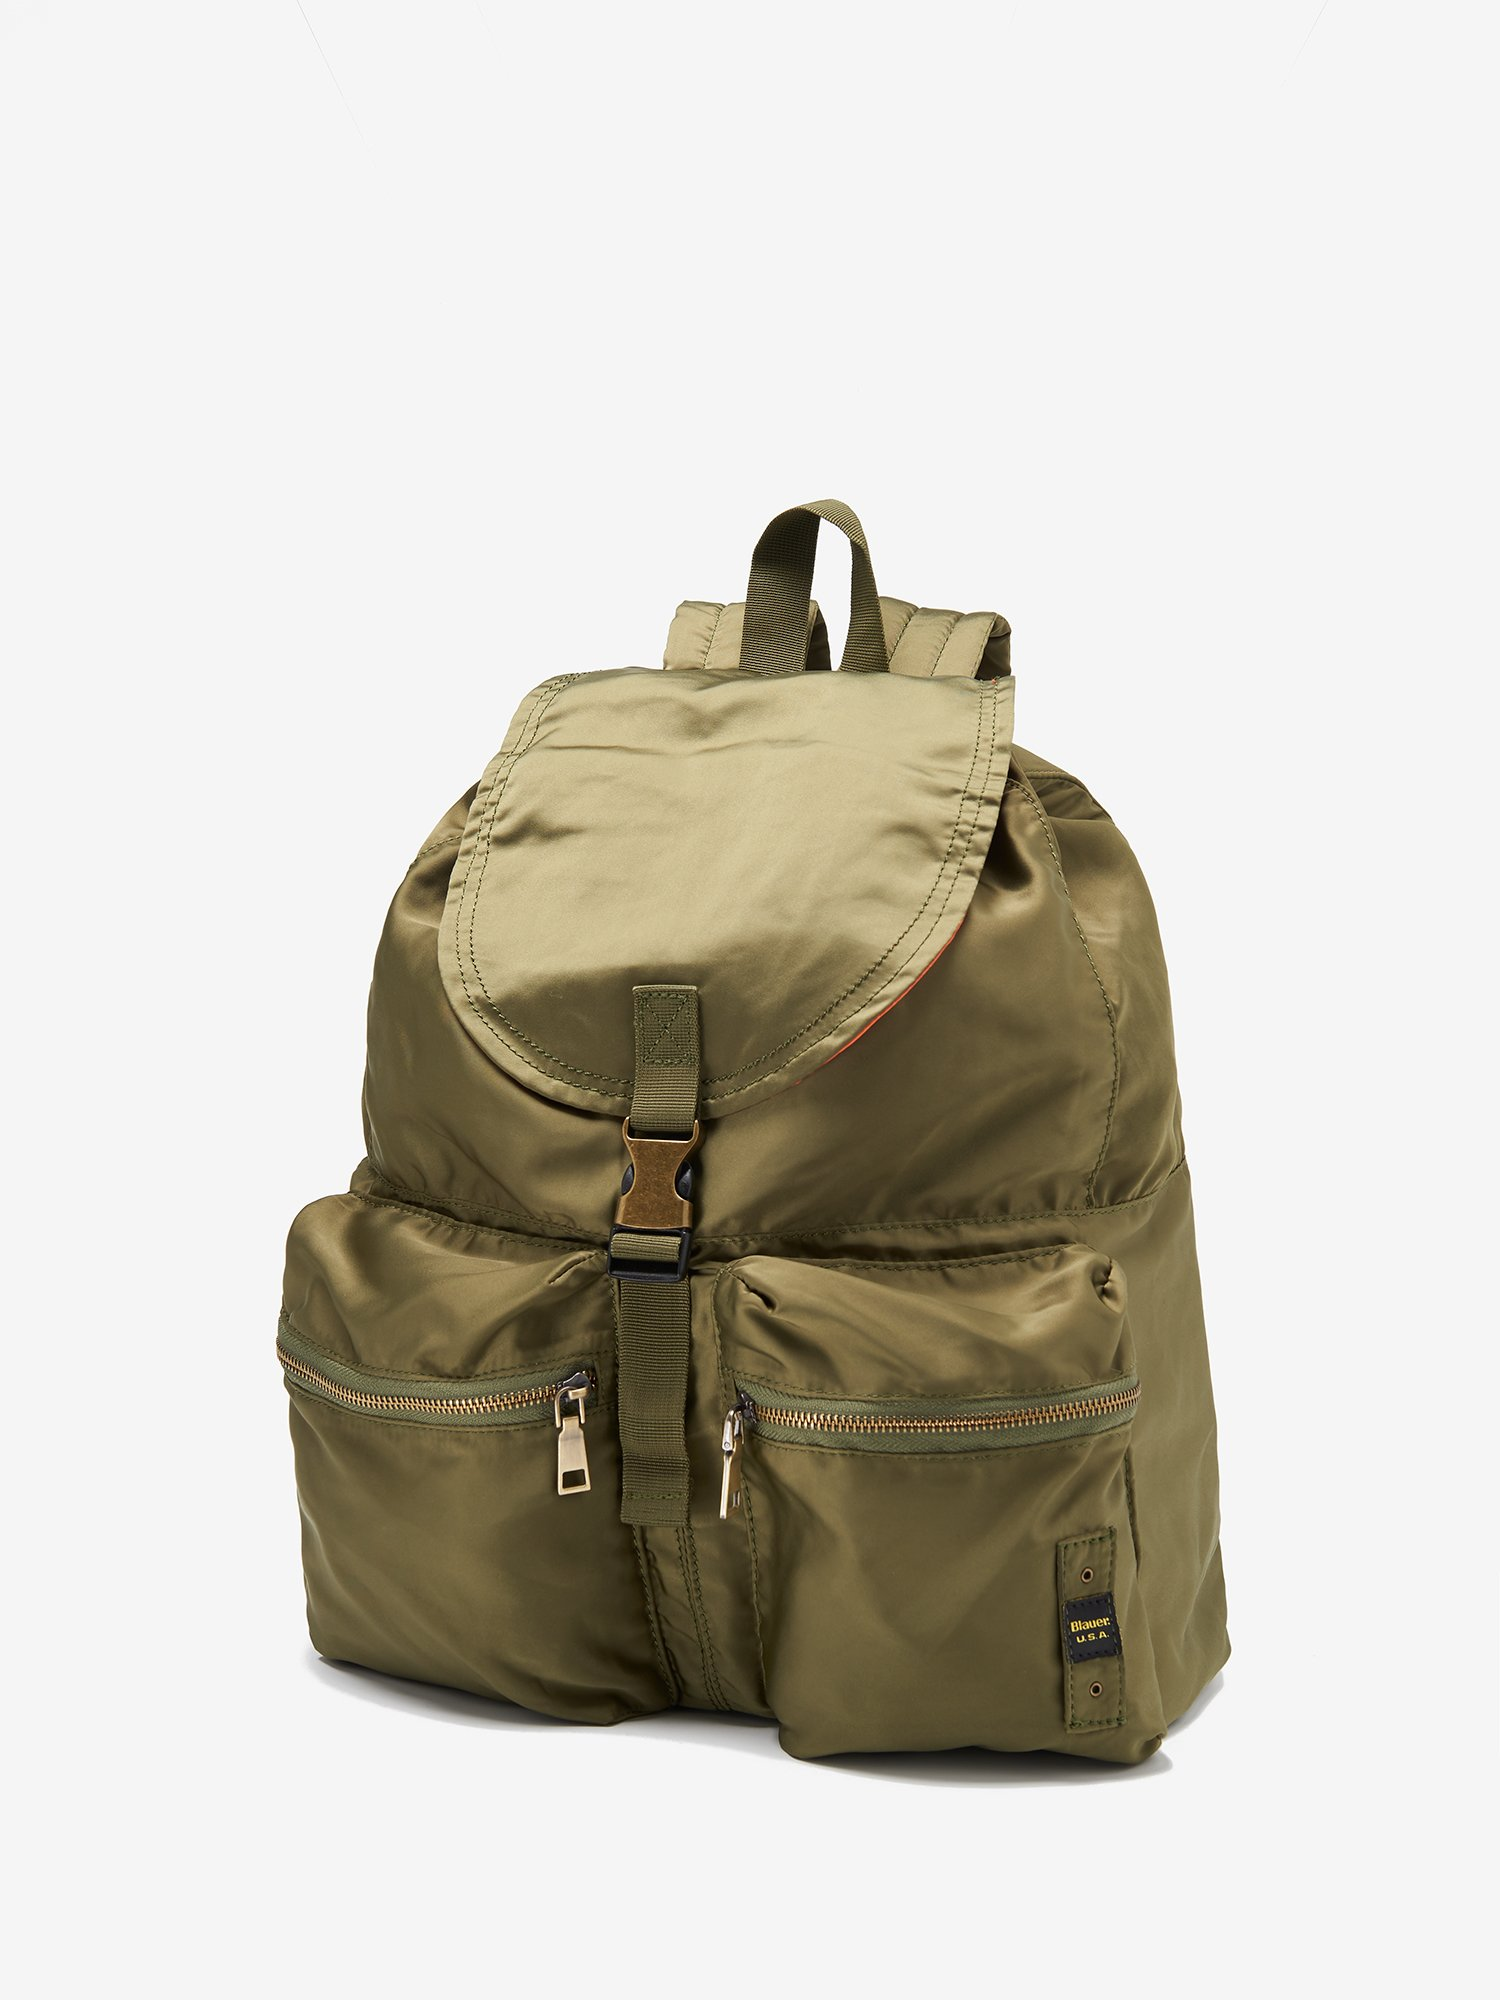 Blauer - ULTRA-LIGHT SPORTY BACKPACK - Green Alligator - Blauer